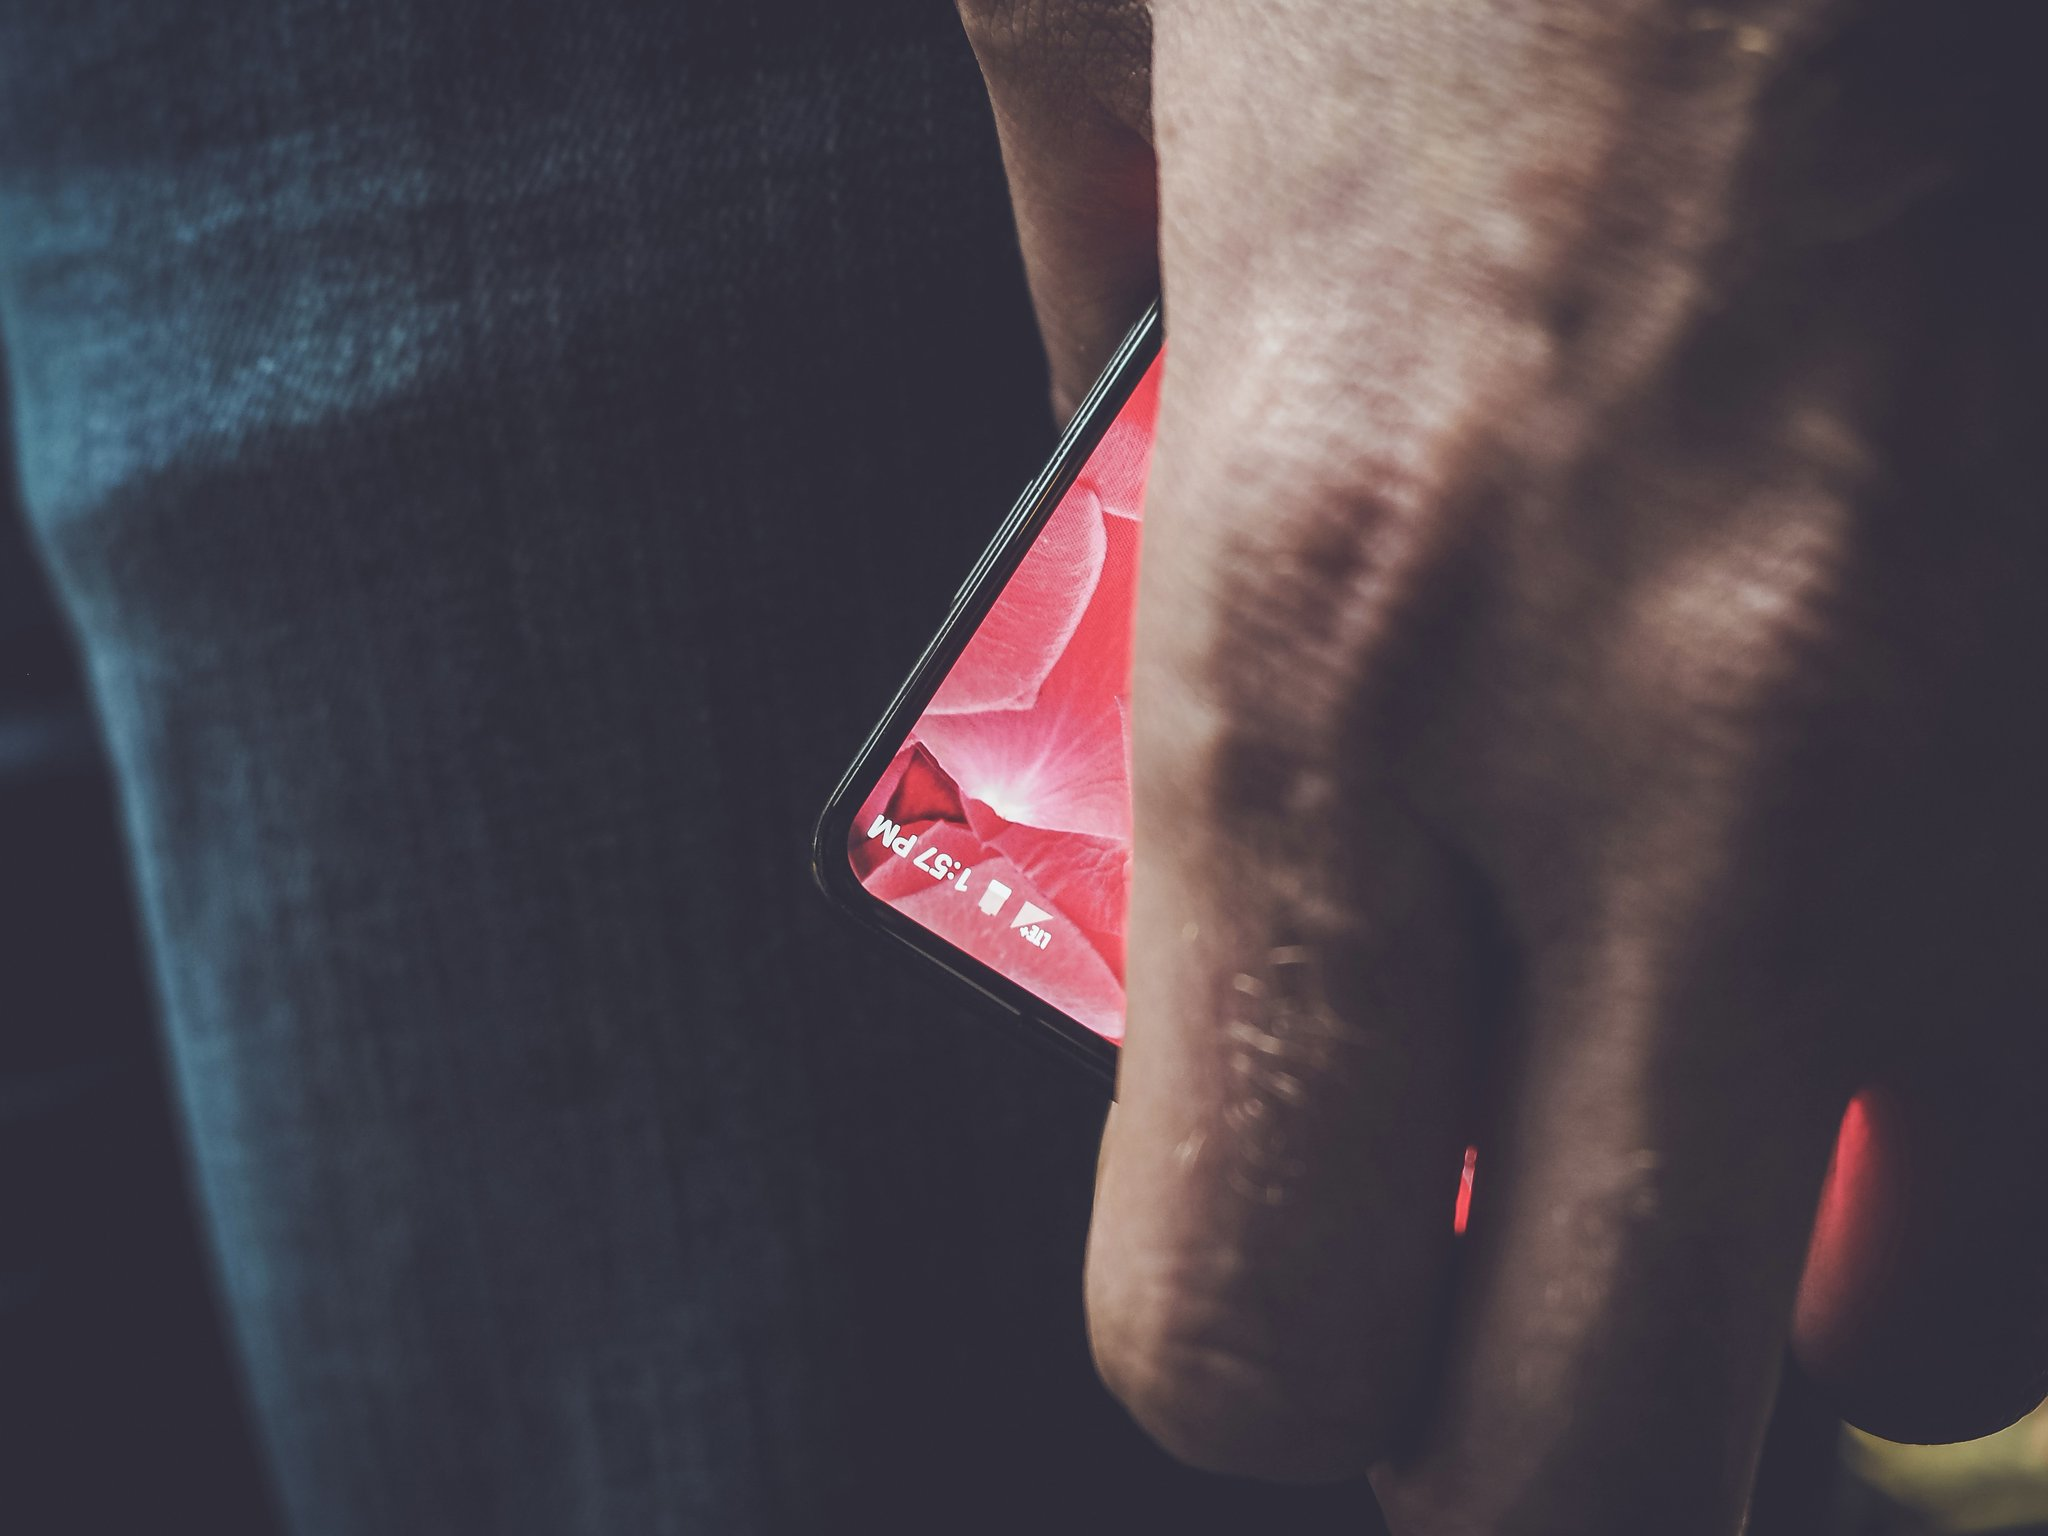 Andy Rubin's Essential Android Smartphone Spotted on GFXBench; Key Specs Revealed